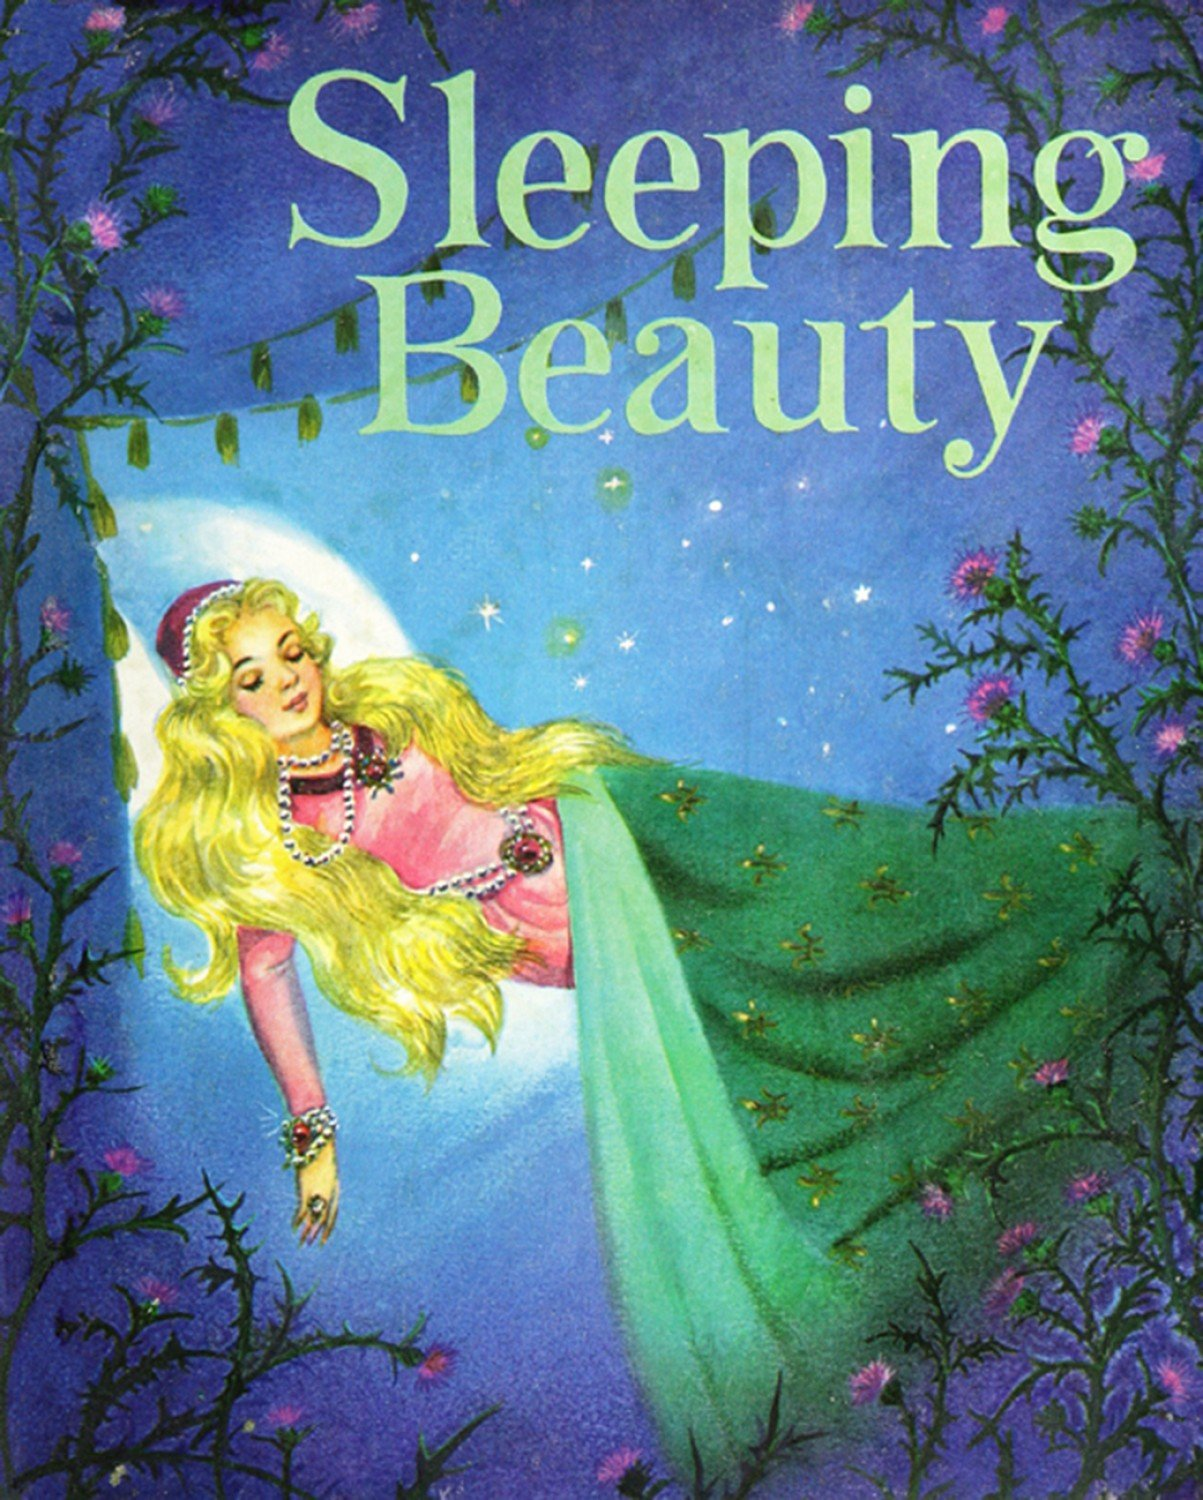 Sleeping Beauty Vintage Storybook Fabric Panel 36 x 44 Inches